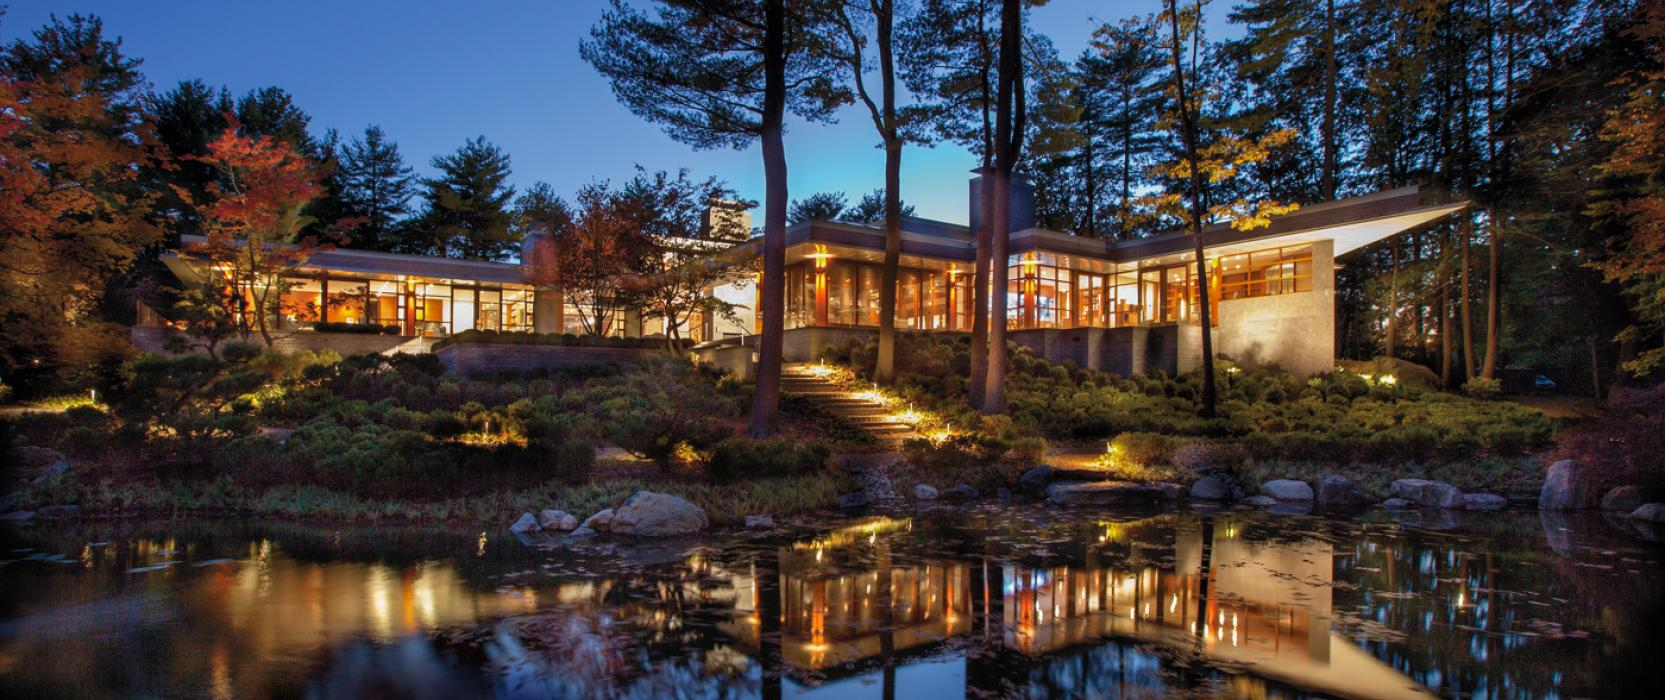 Landscape lighting by Cutting Edge Systems Corporation